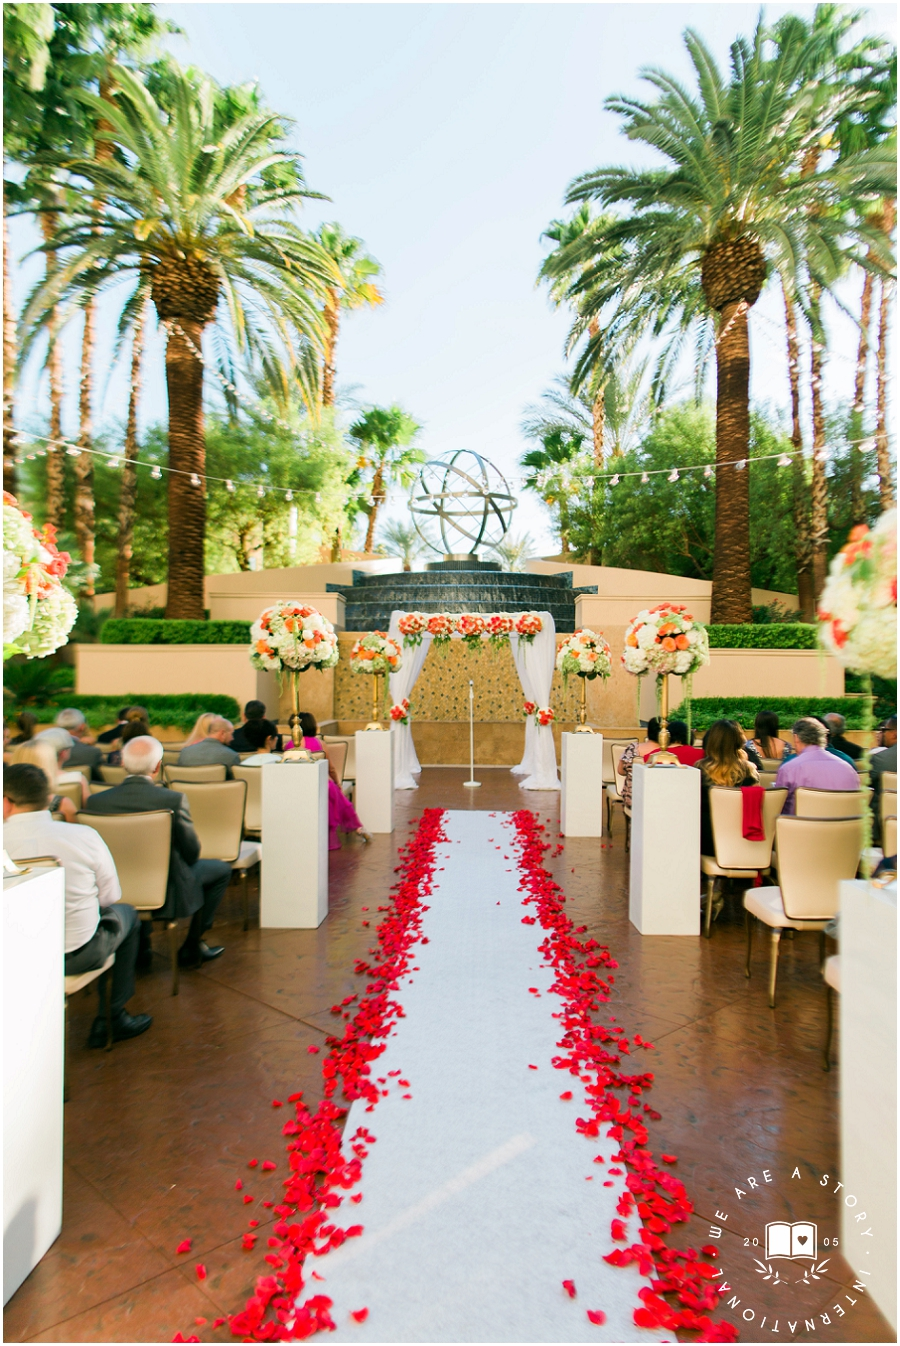 Four Seasons wedding photographer Las Vegas _ We Are A Story wedding photographer_2485.jpg